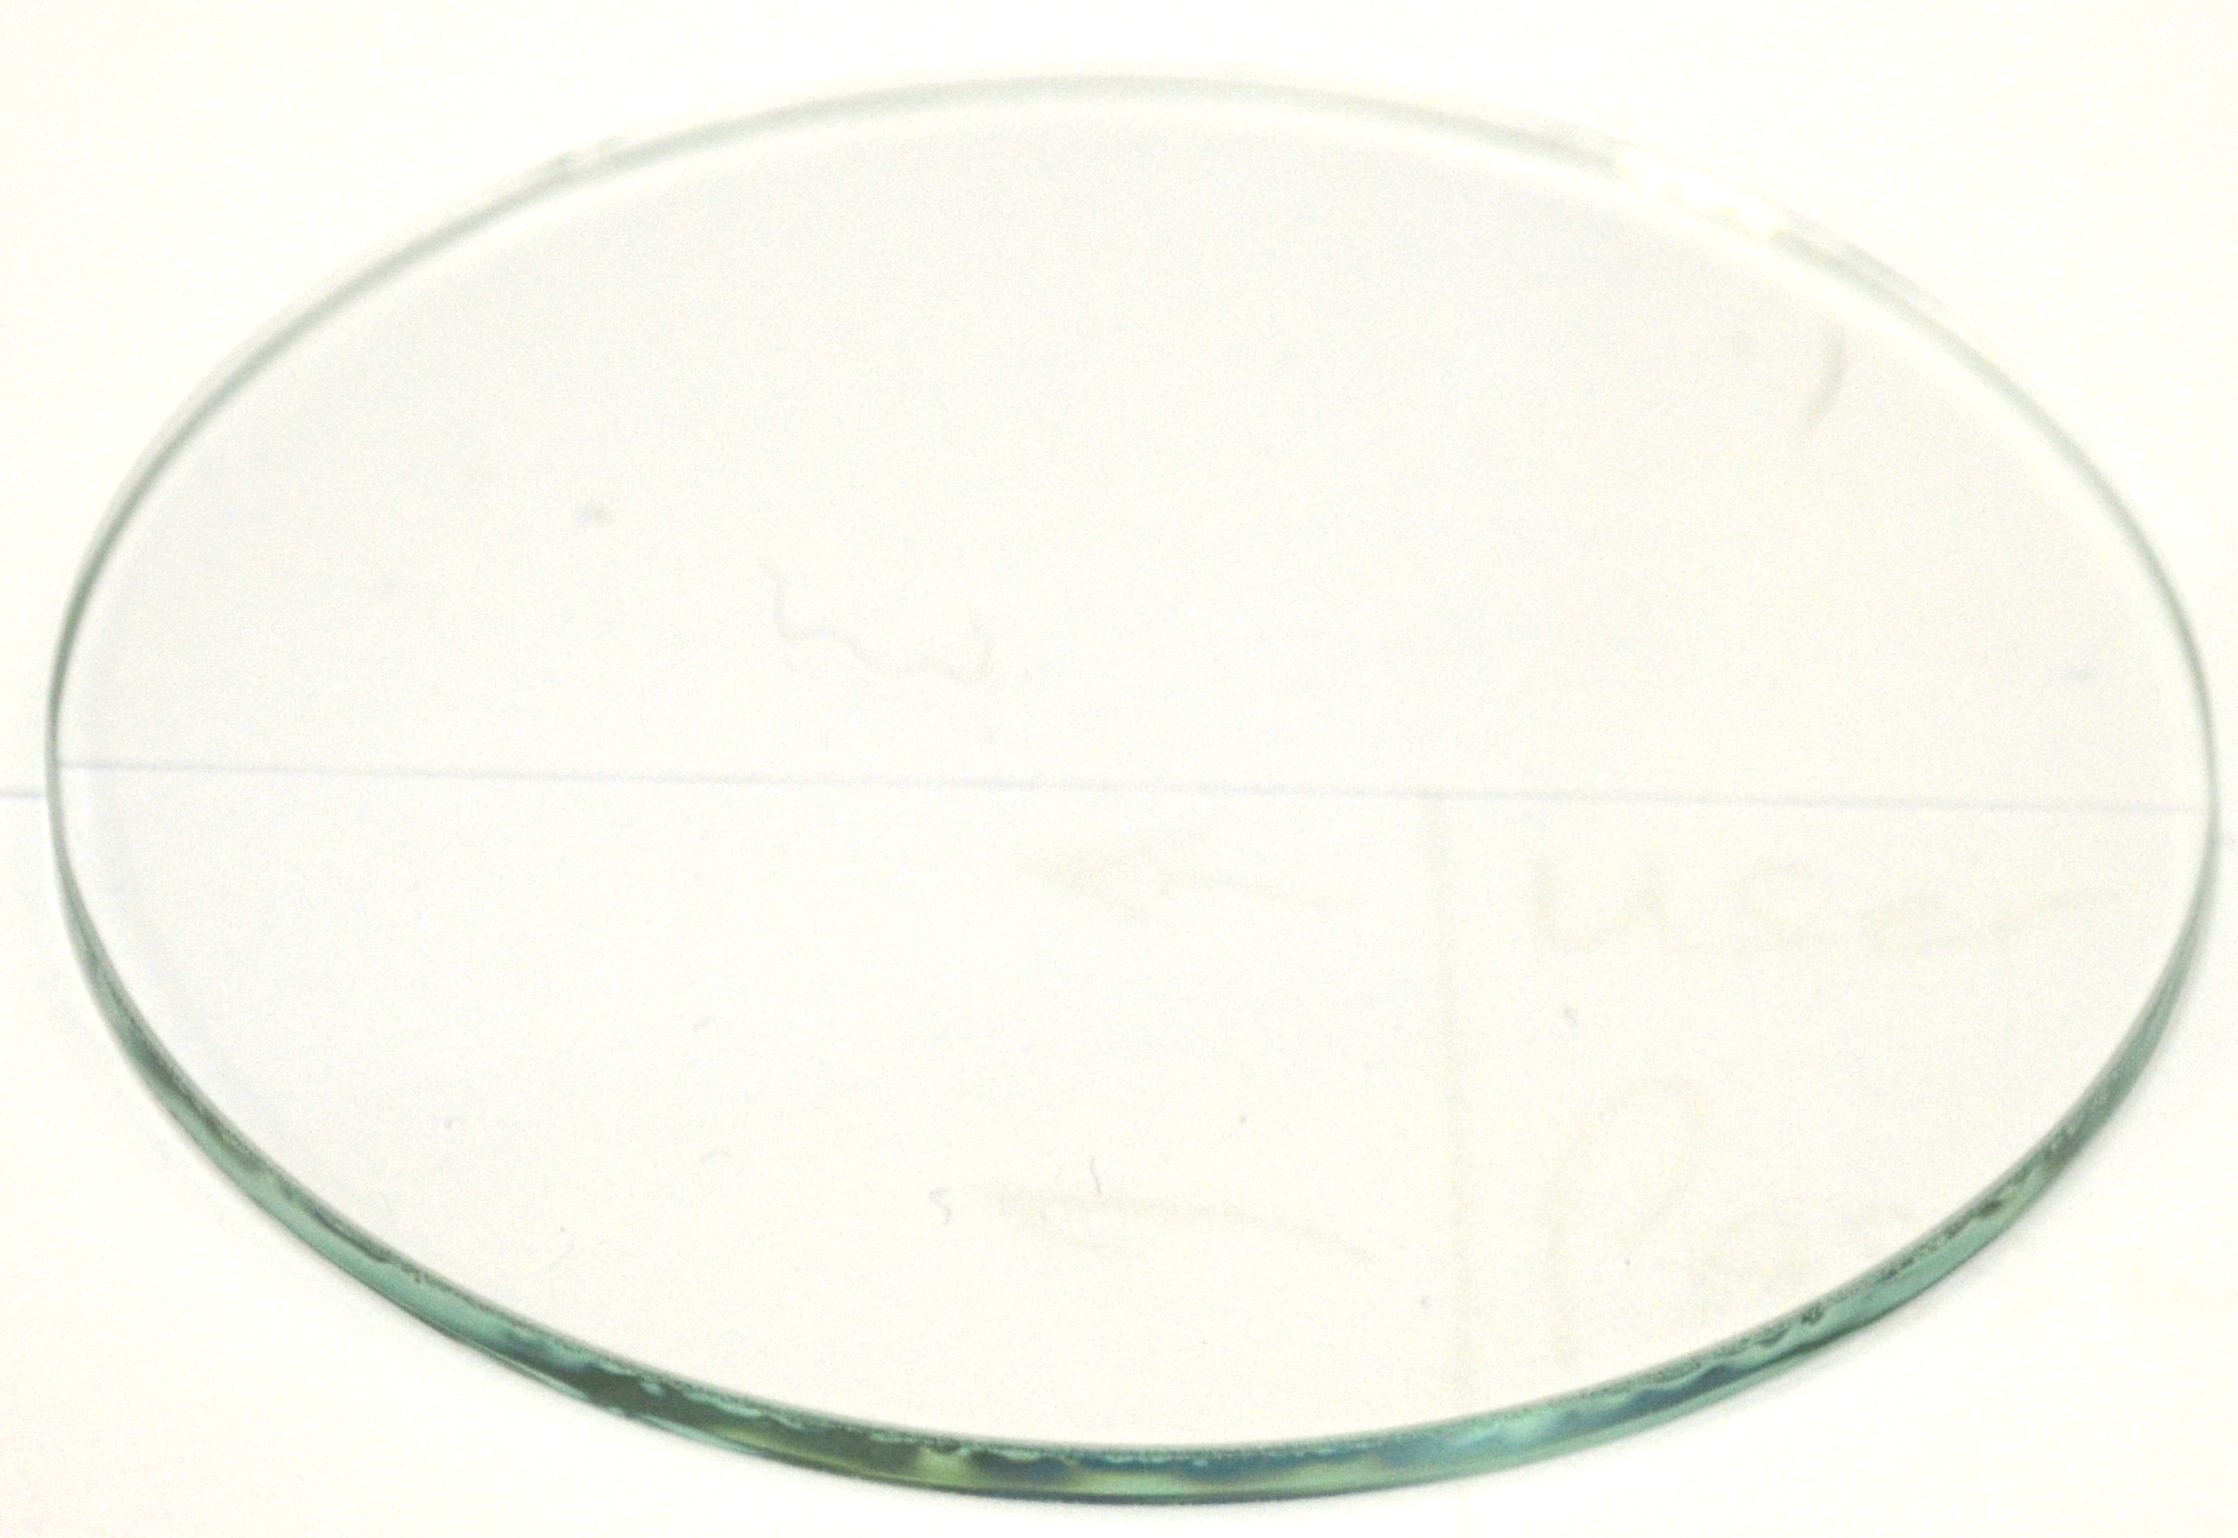 3mm x 75mm Chronometric Instrument Glass